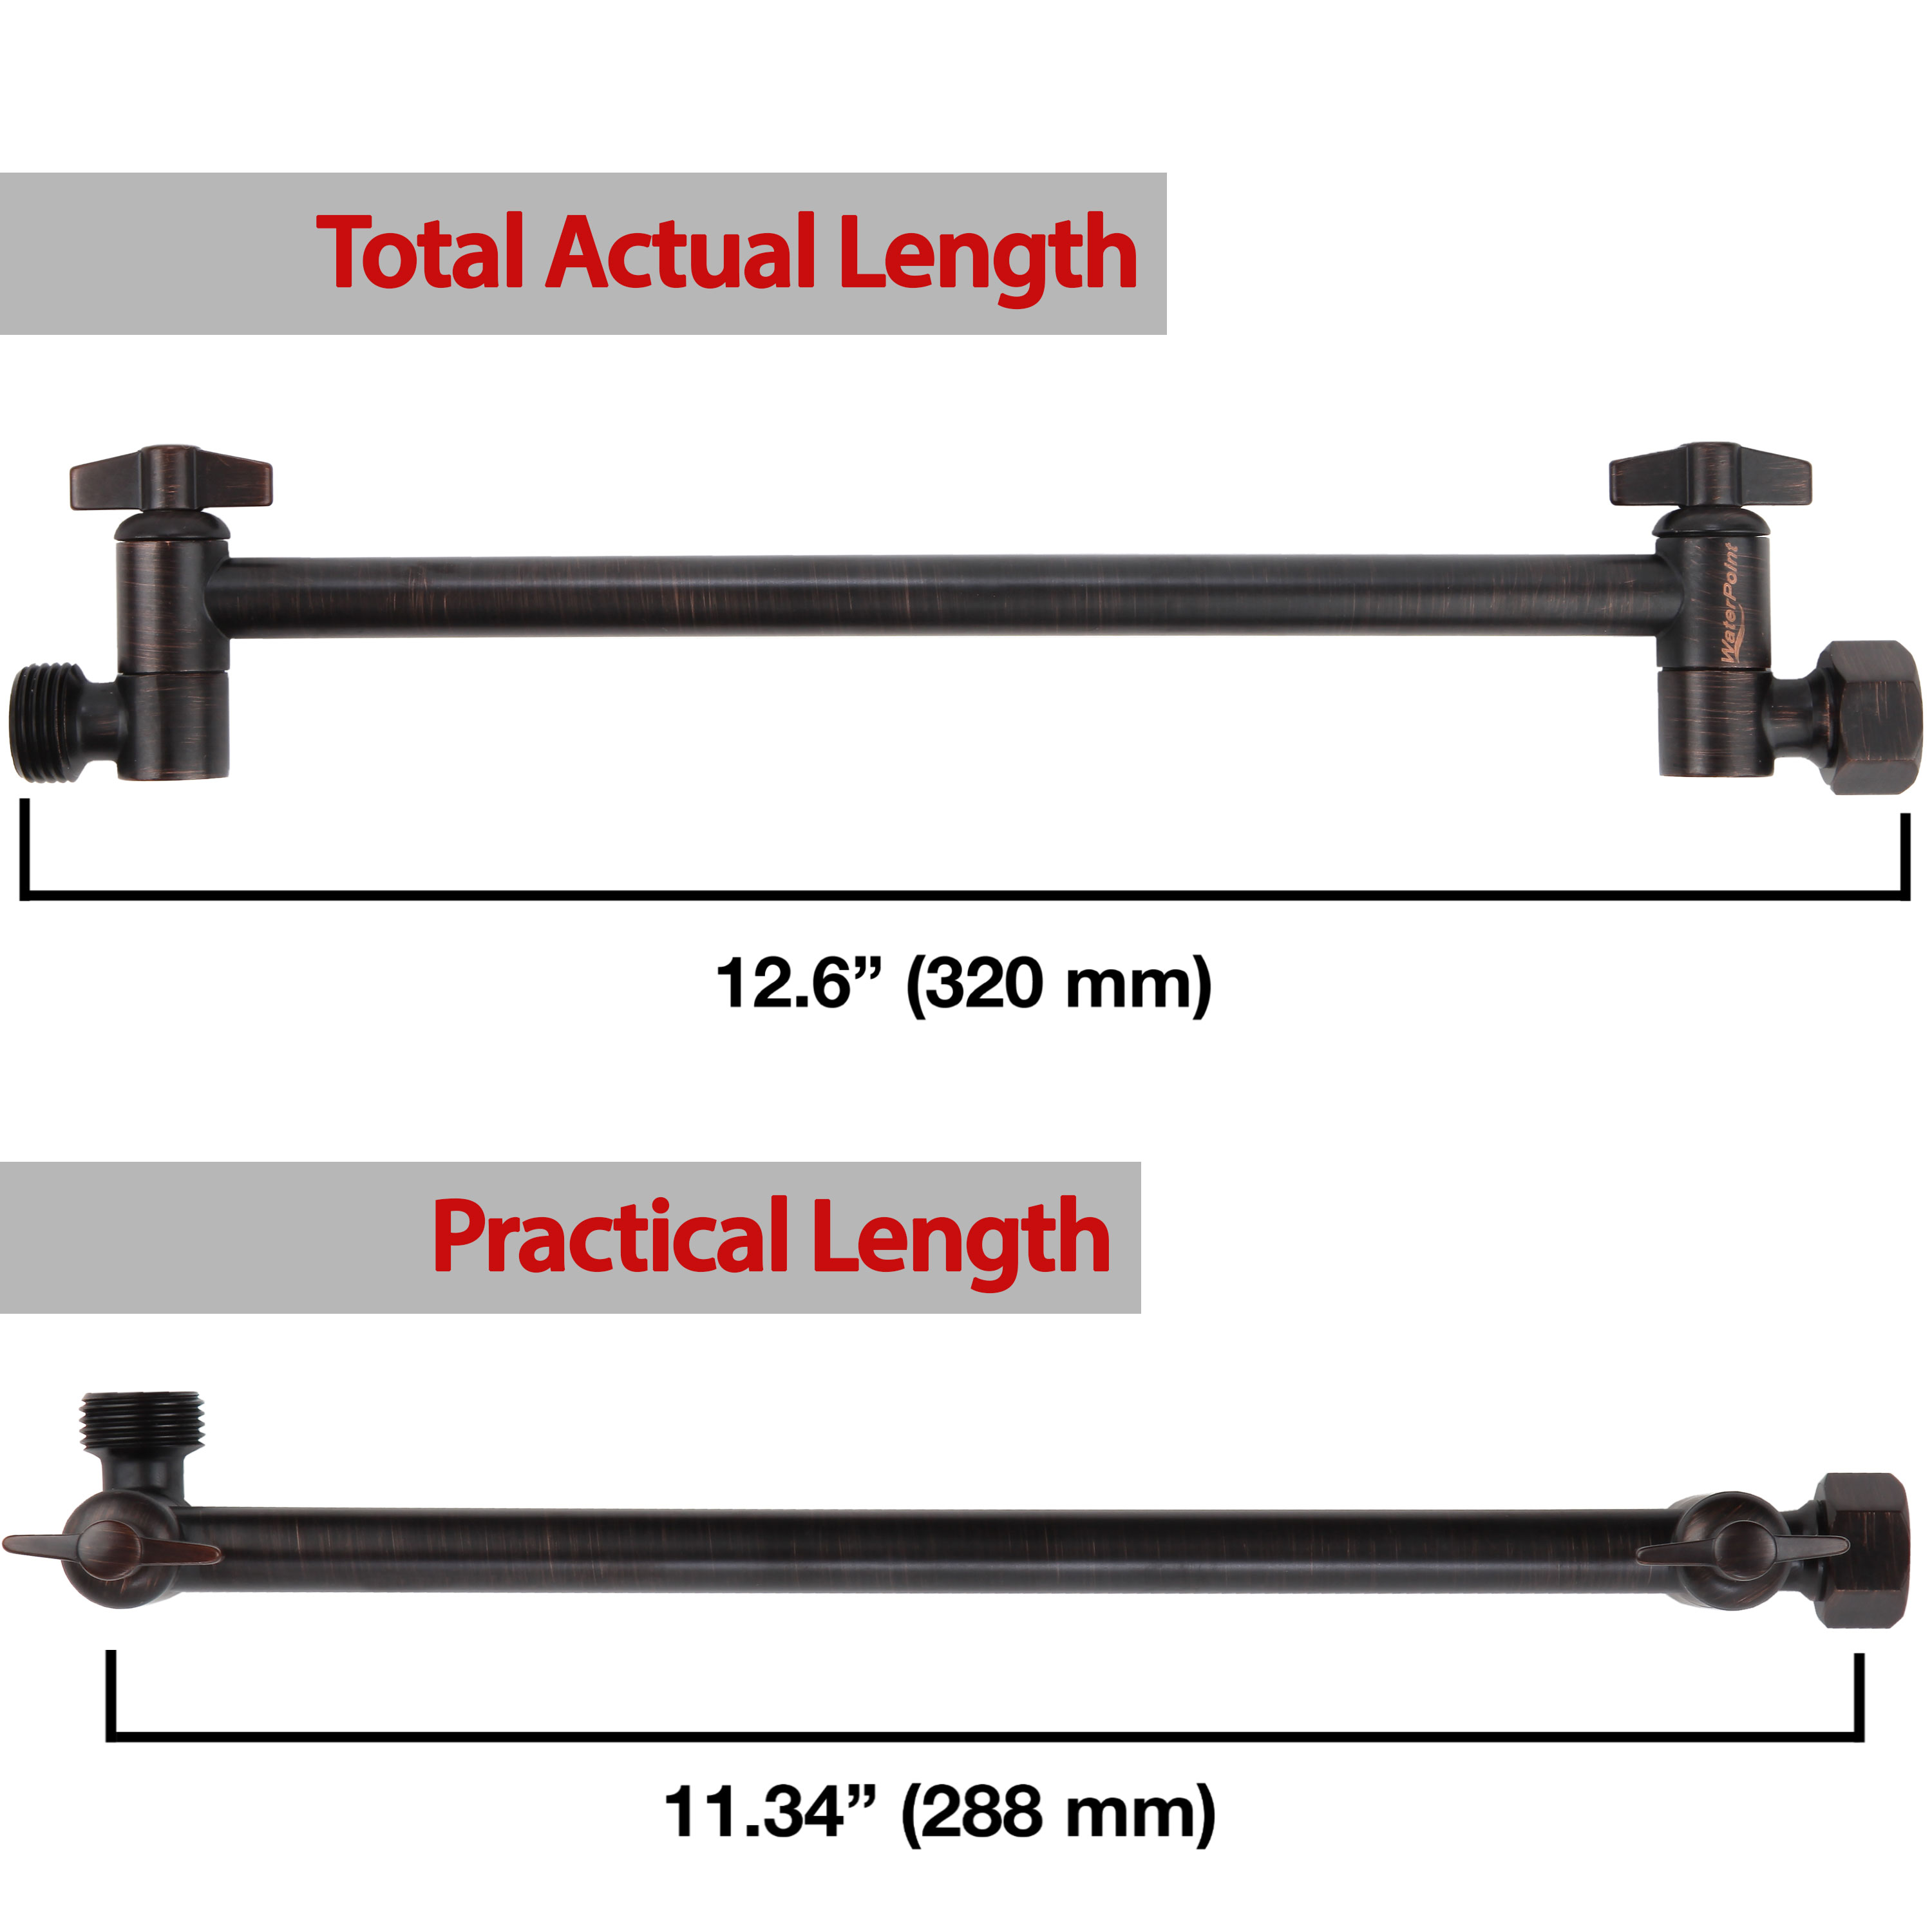 Adjustable Shower Arm 11 Inch Oil Rubbed Bronze Finish